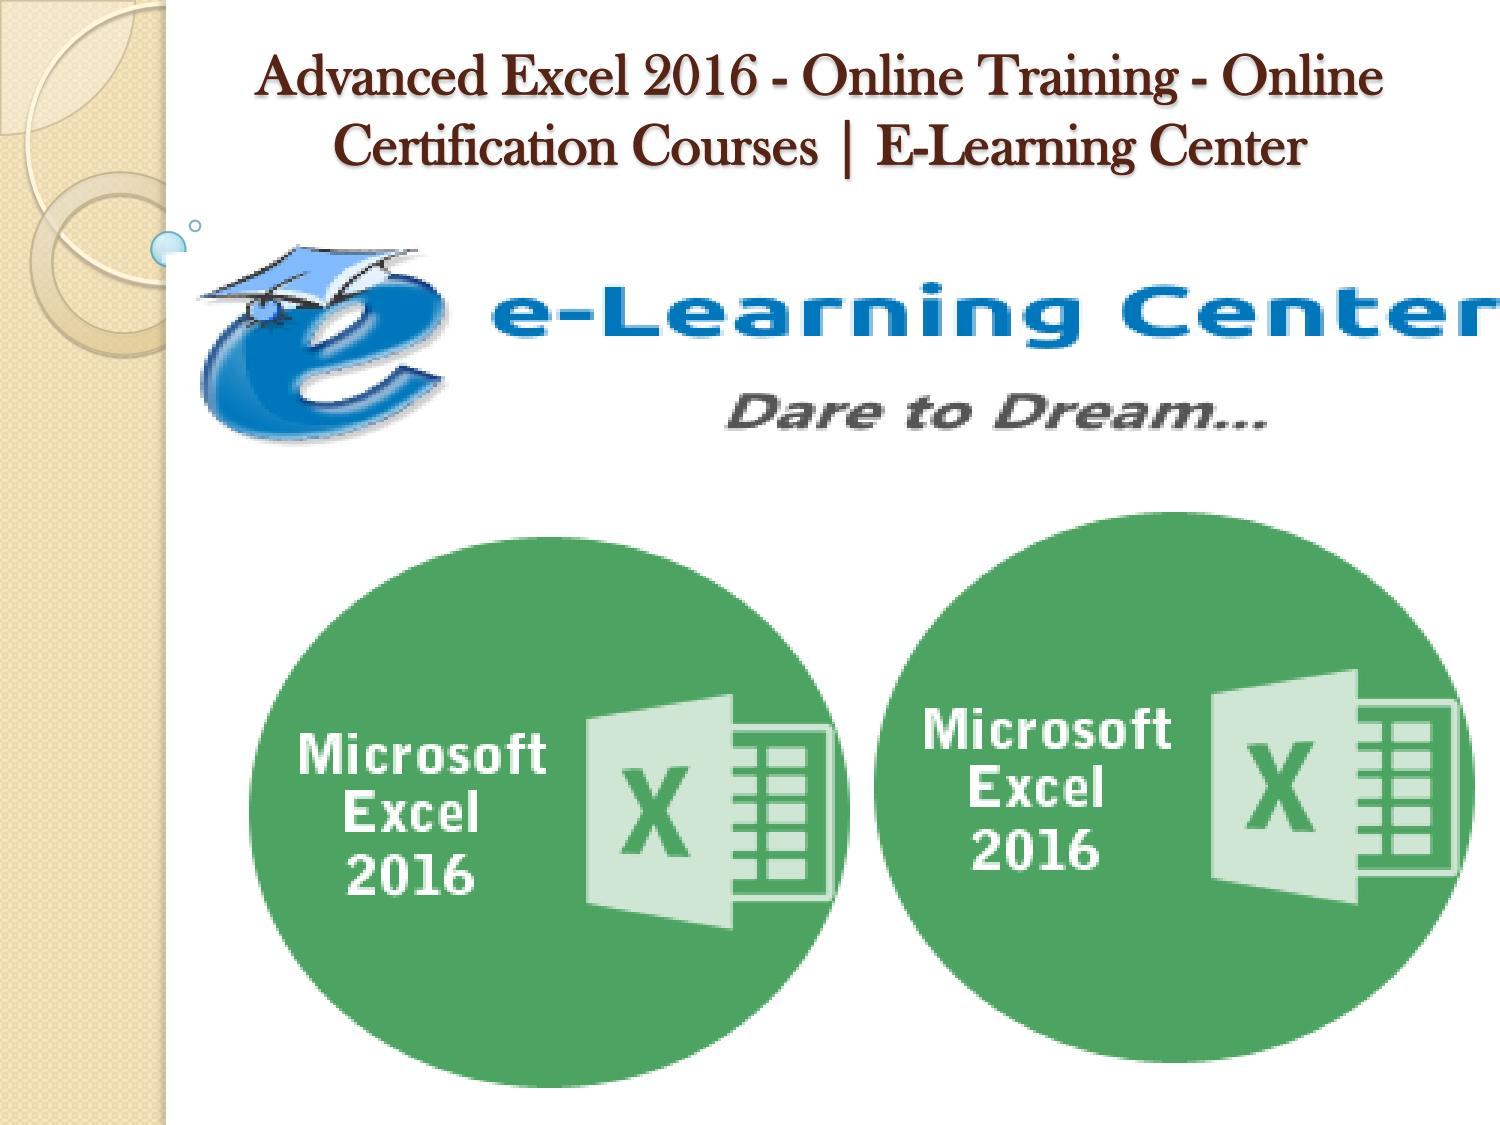 Advanced excel 2016 online training online certification advanced excel 2016 online training online certification courses by e learning center issuu xflitez Gallery